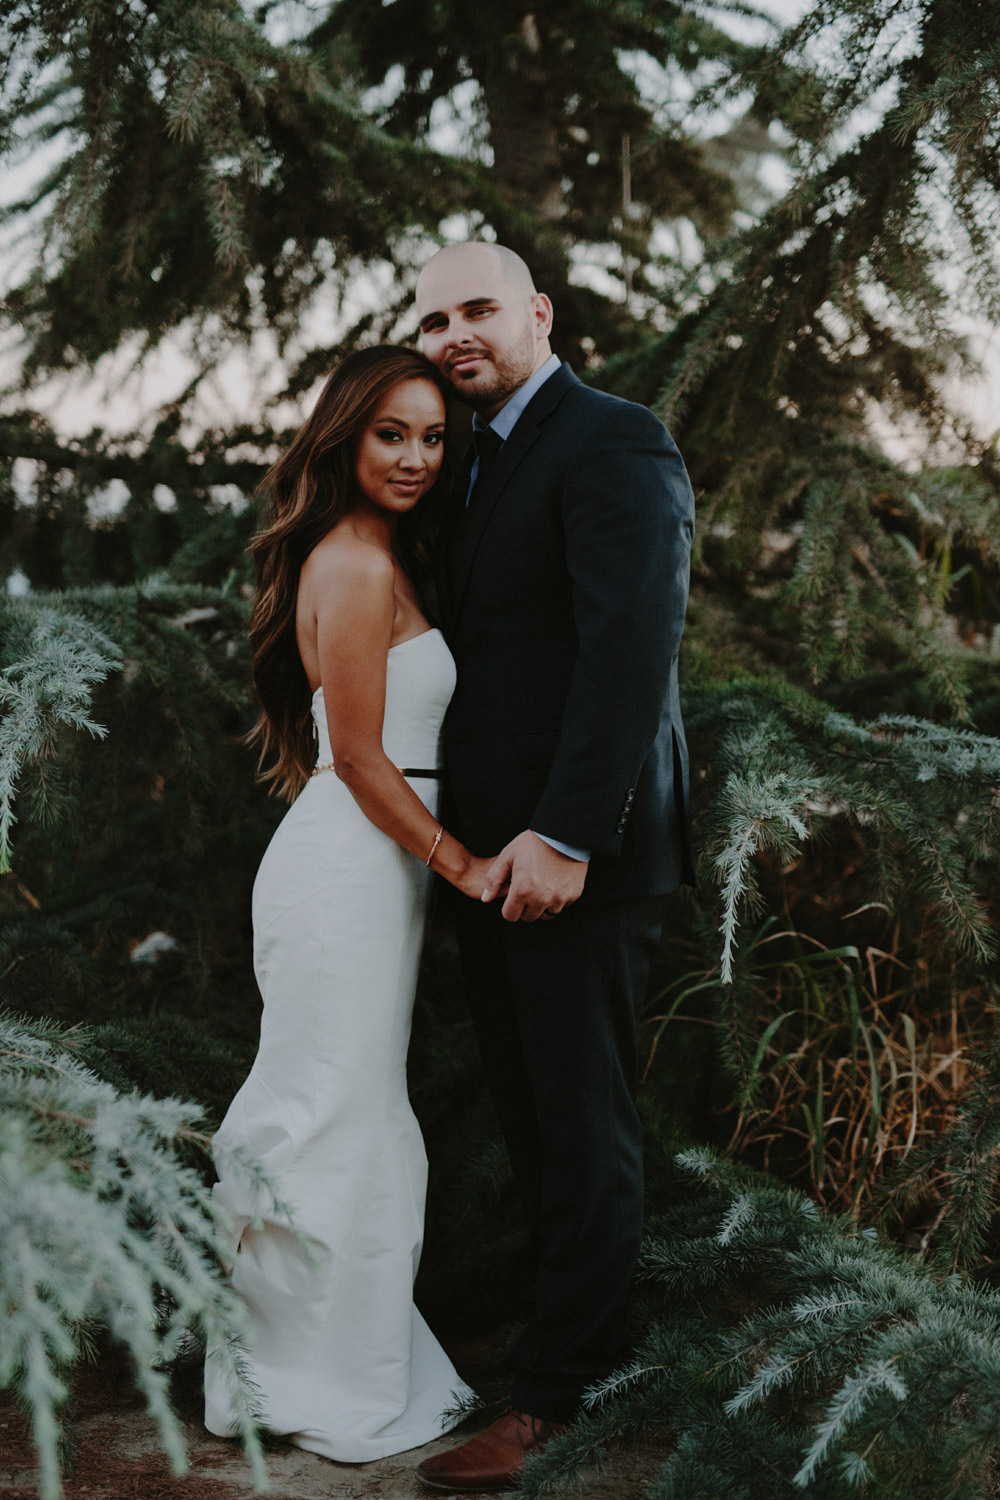 Greg-Petersen-San-Francisco-Wedding-Photographer-1-81.jpg